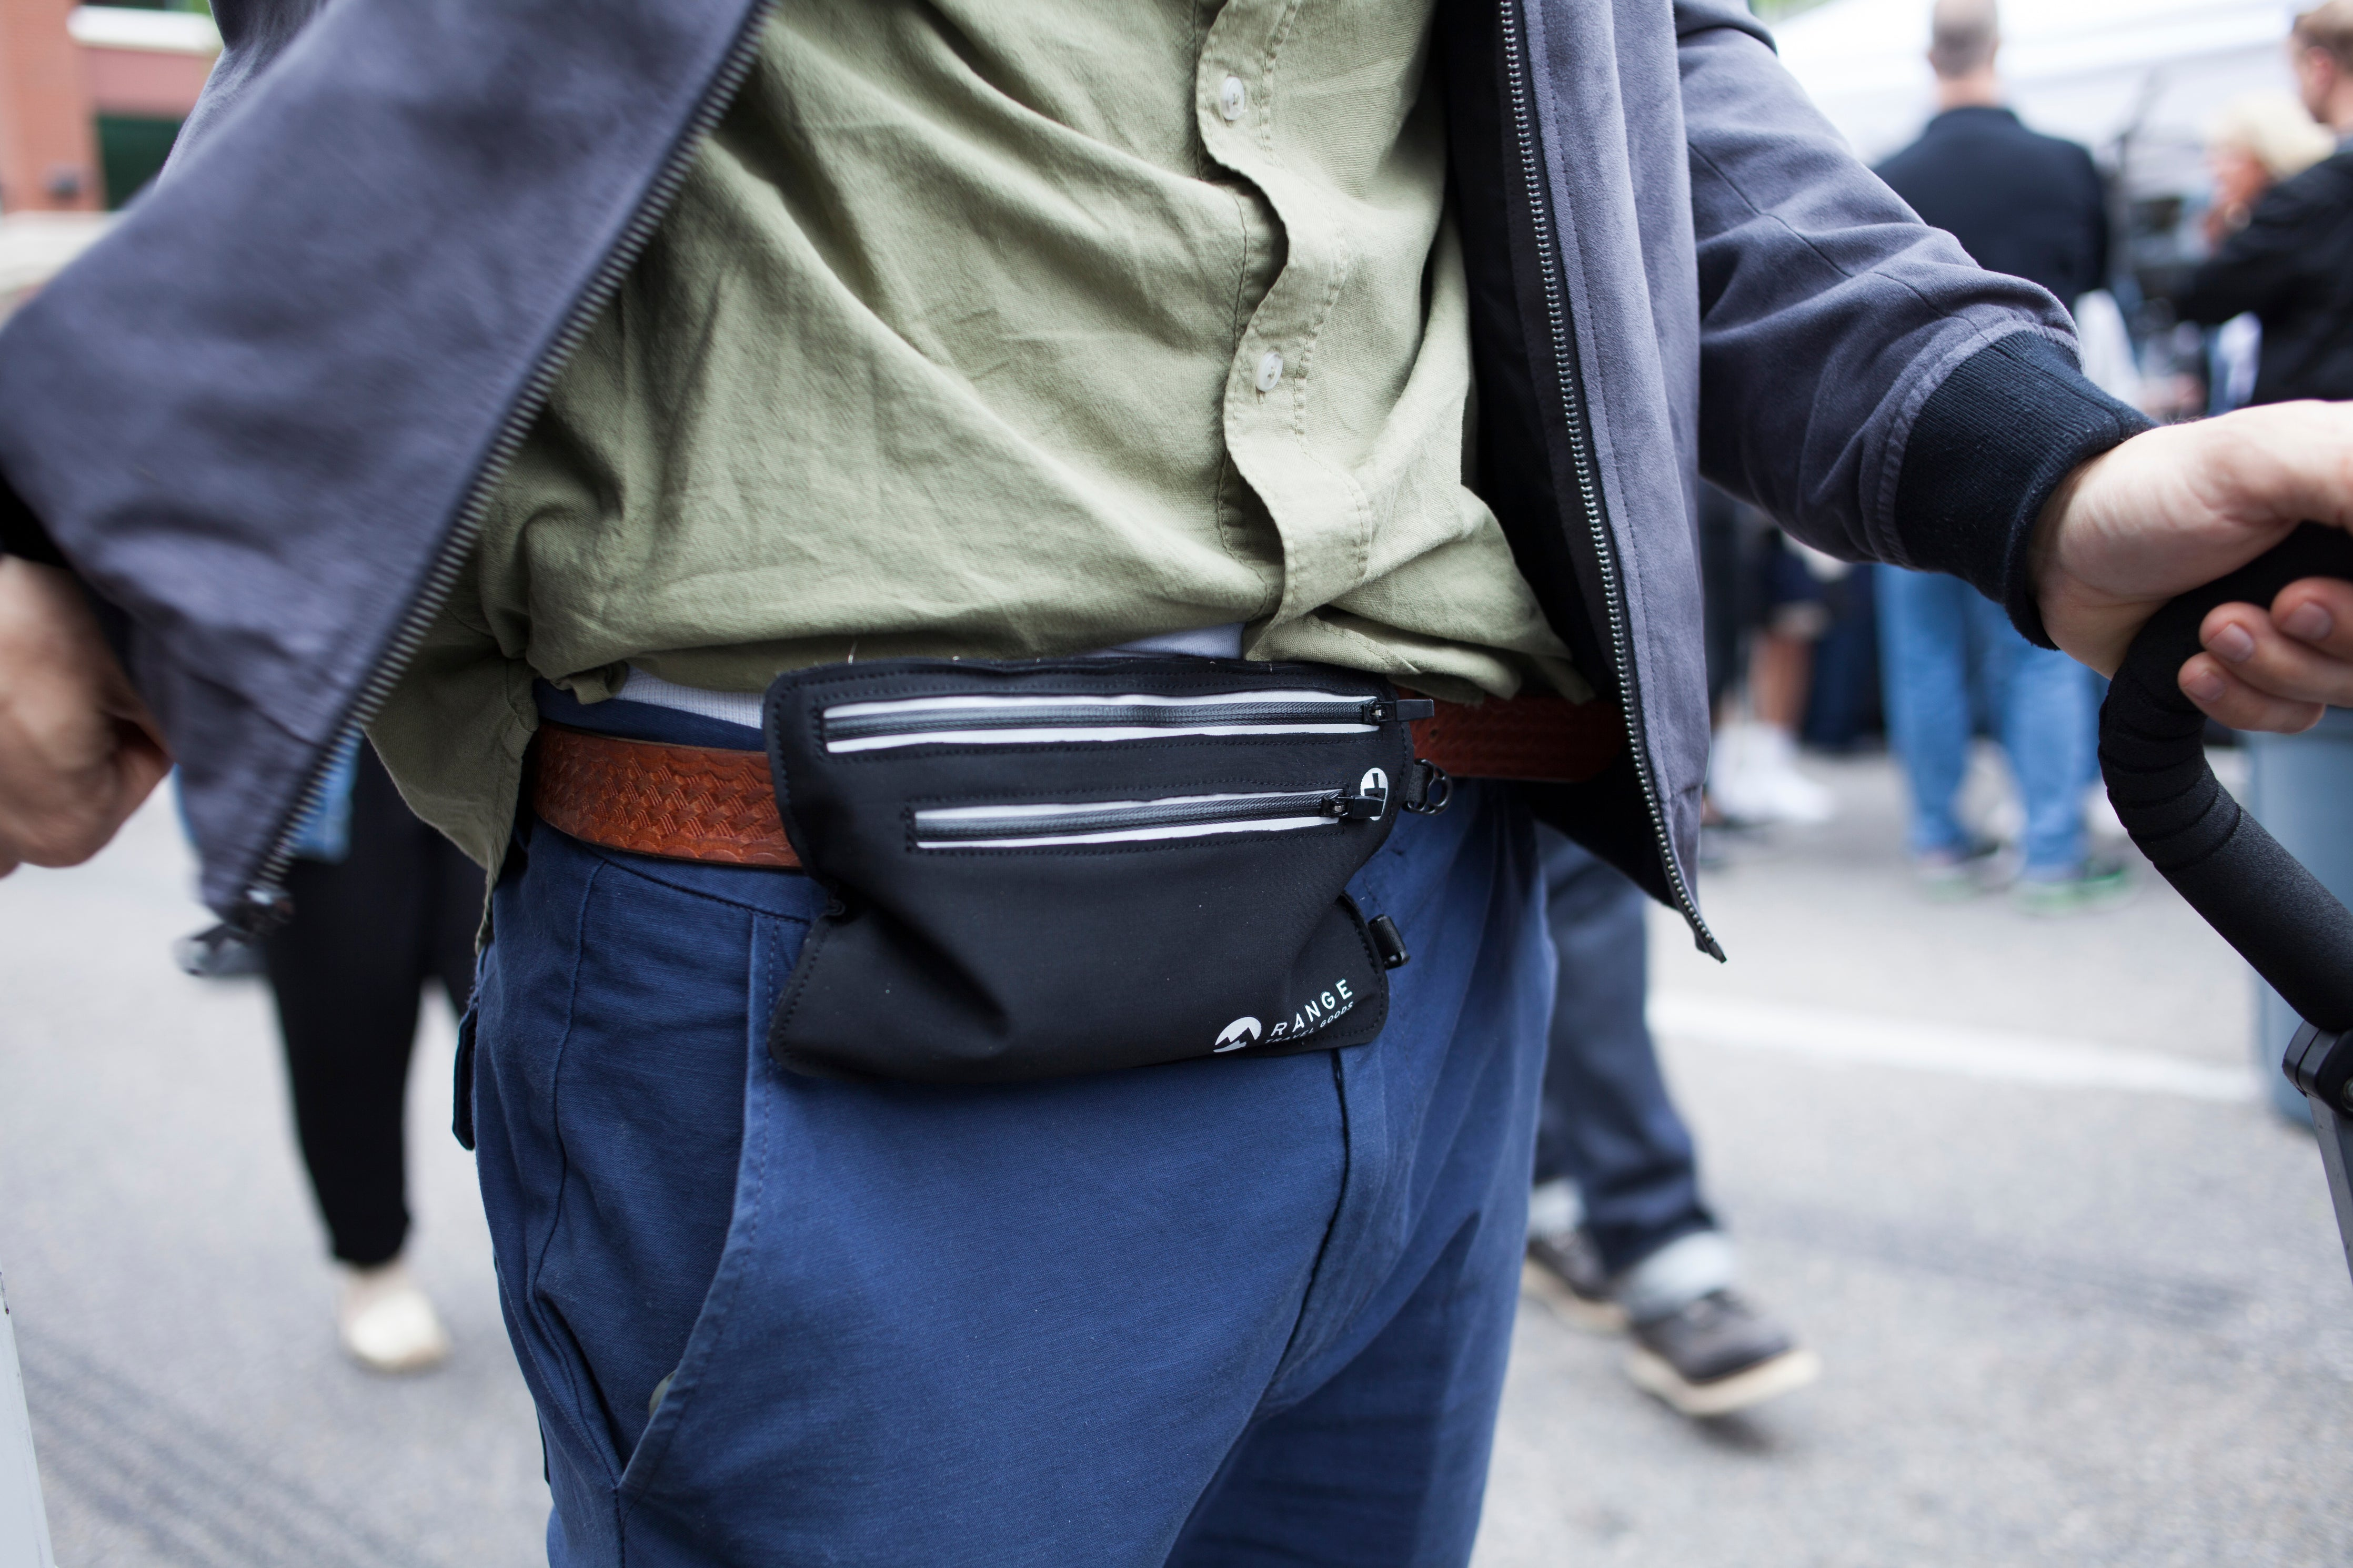 Travel Stash- Money belt / travel organizer